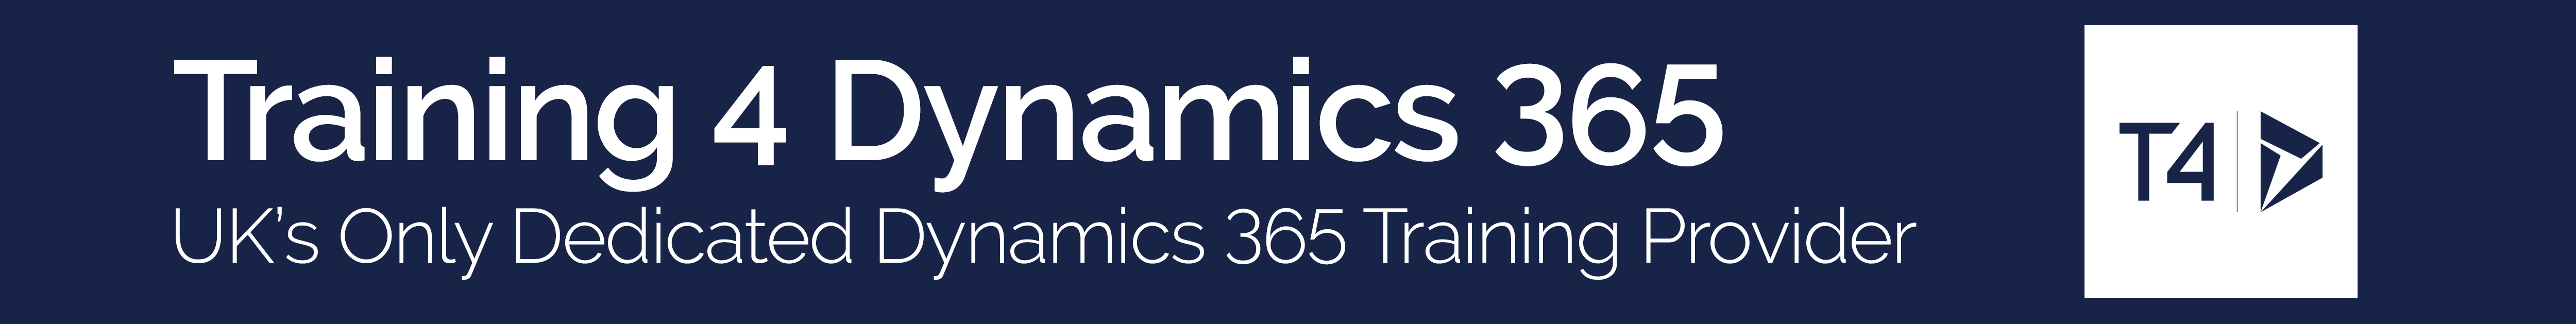 Dynamice 365 finance and operations developer training course